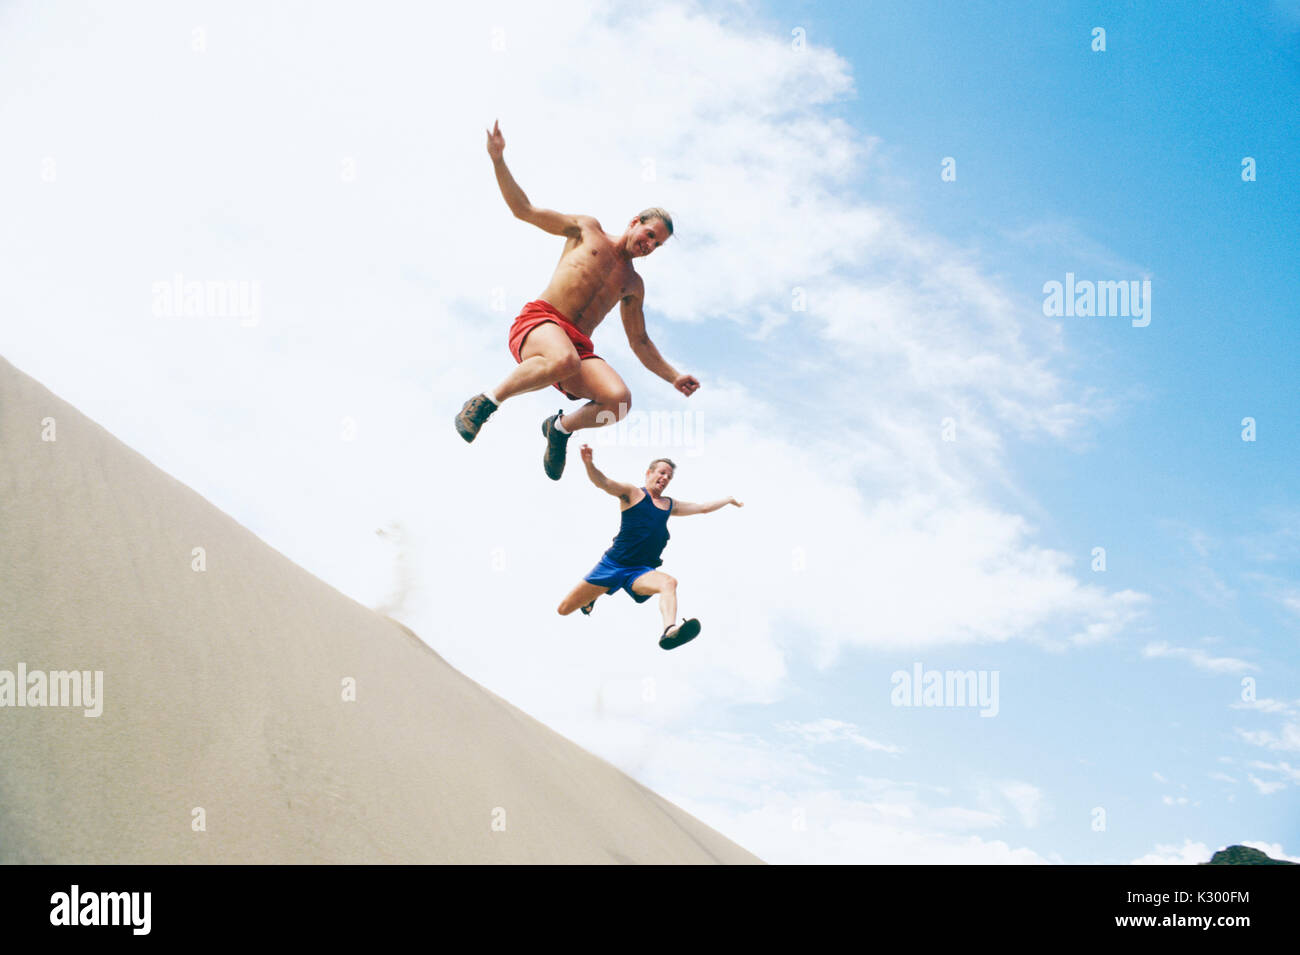 Two late 20's Caucasian men leaping off a sand dune.  Near Vantage, Washington, USA.  Frenchmans Coulee. - Stock Image